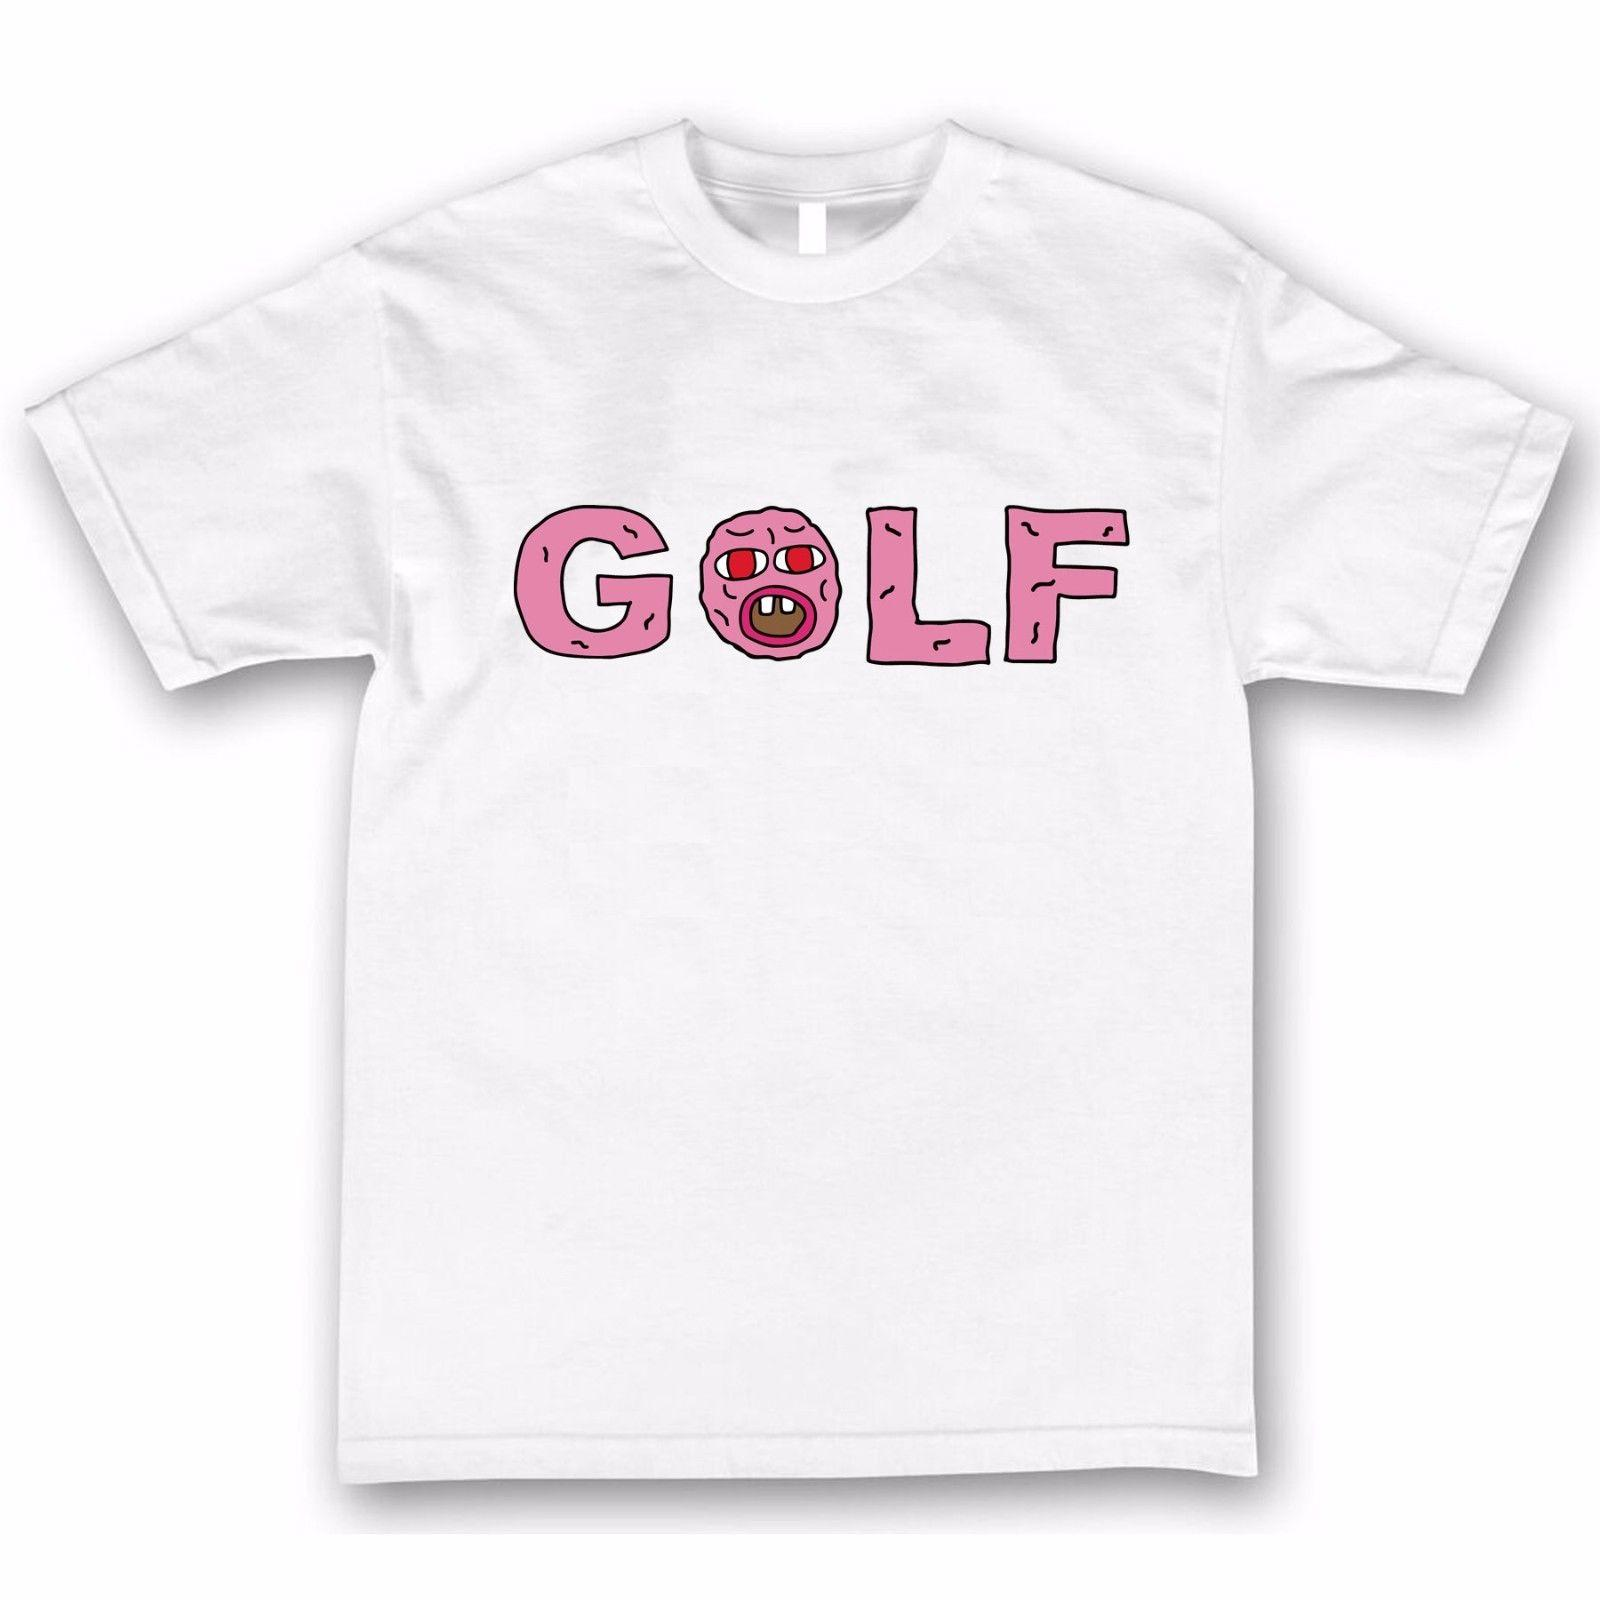 acb68f52f383 Tyler The Creator Golf T Shirt EARL Odd Future Cherry Bomb Wolf Gang OFWGKTA  OF T Shirt Summer Famous Clothing Offensive T Shirt T Shirt Slogan From ...